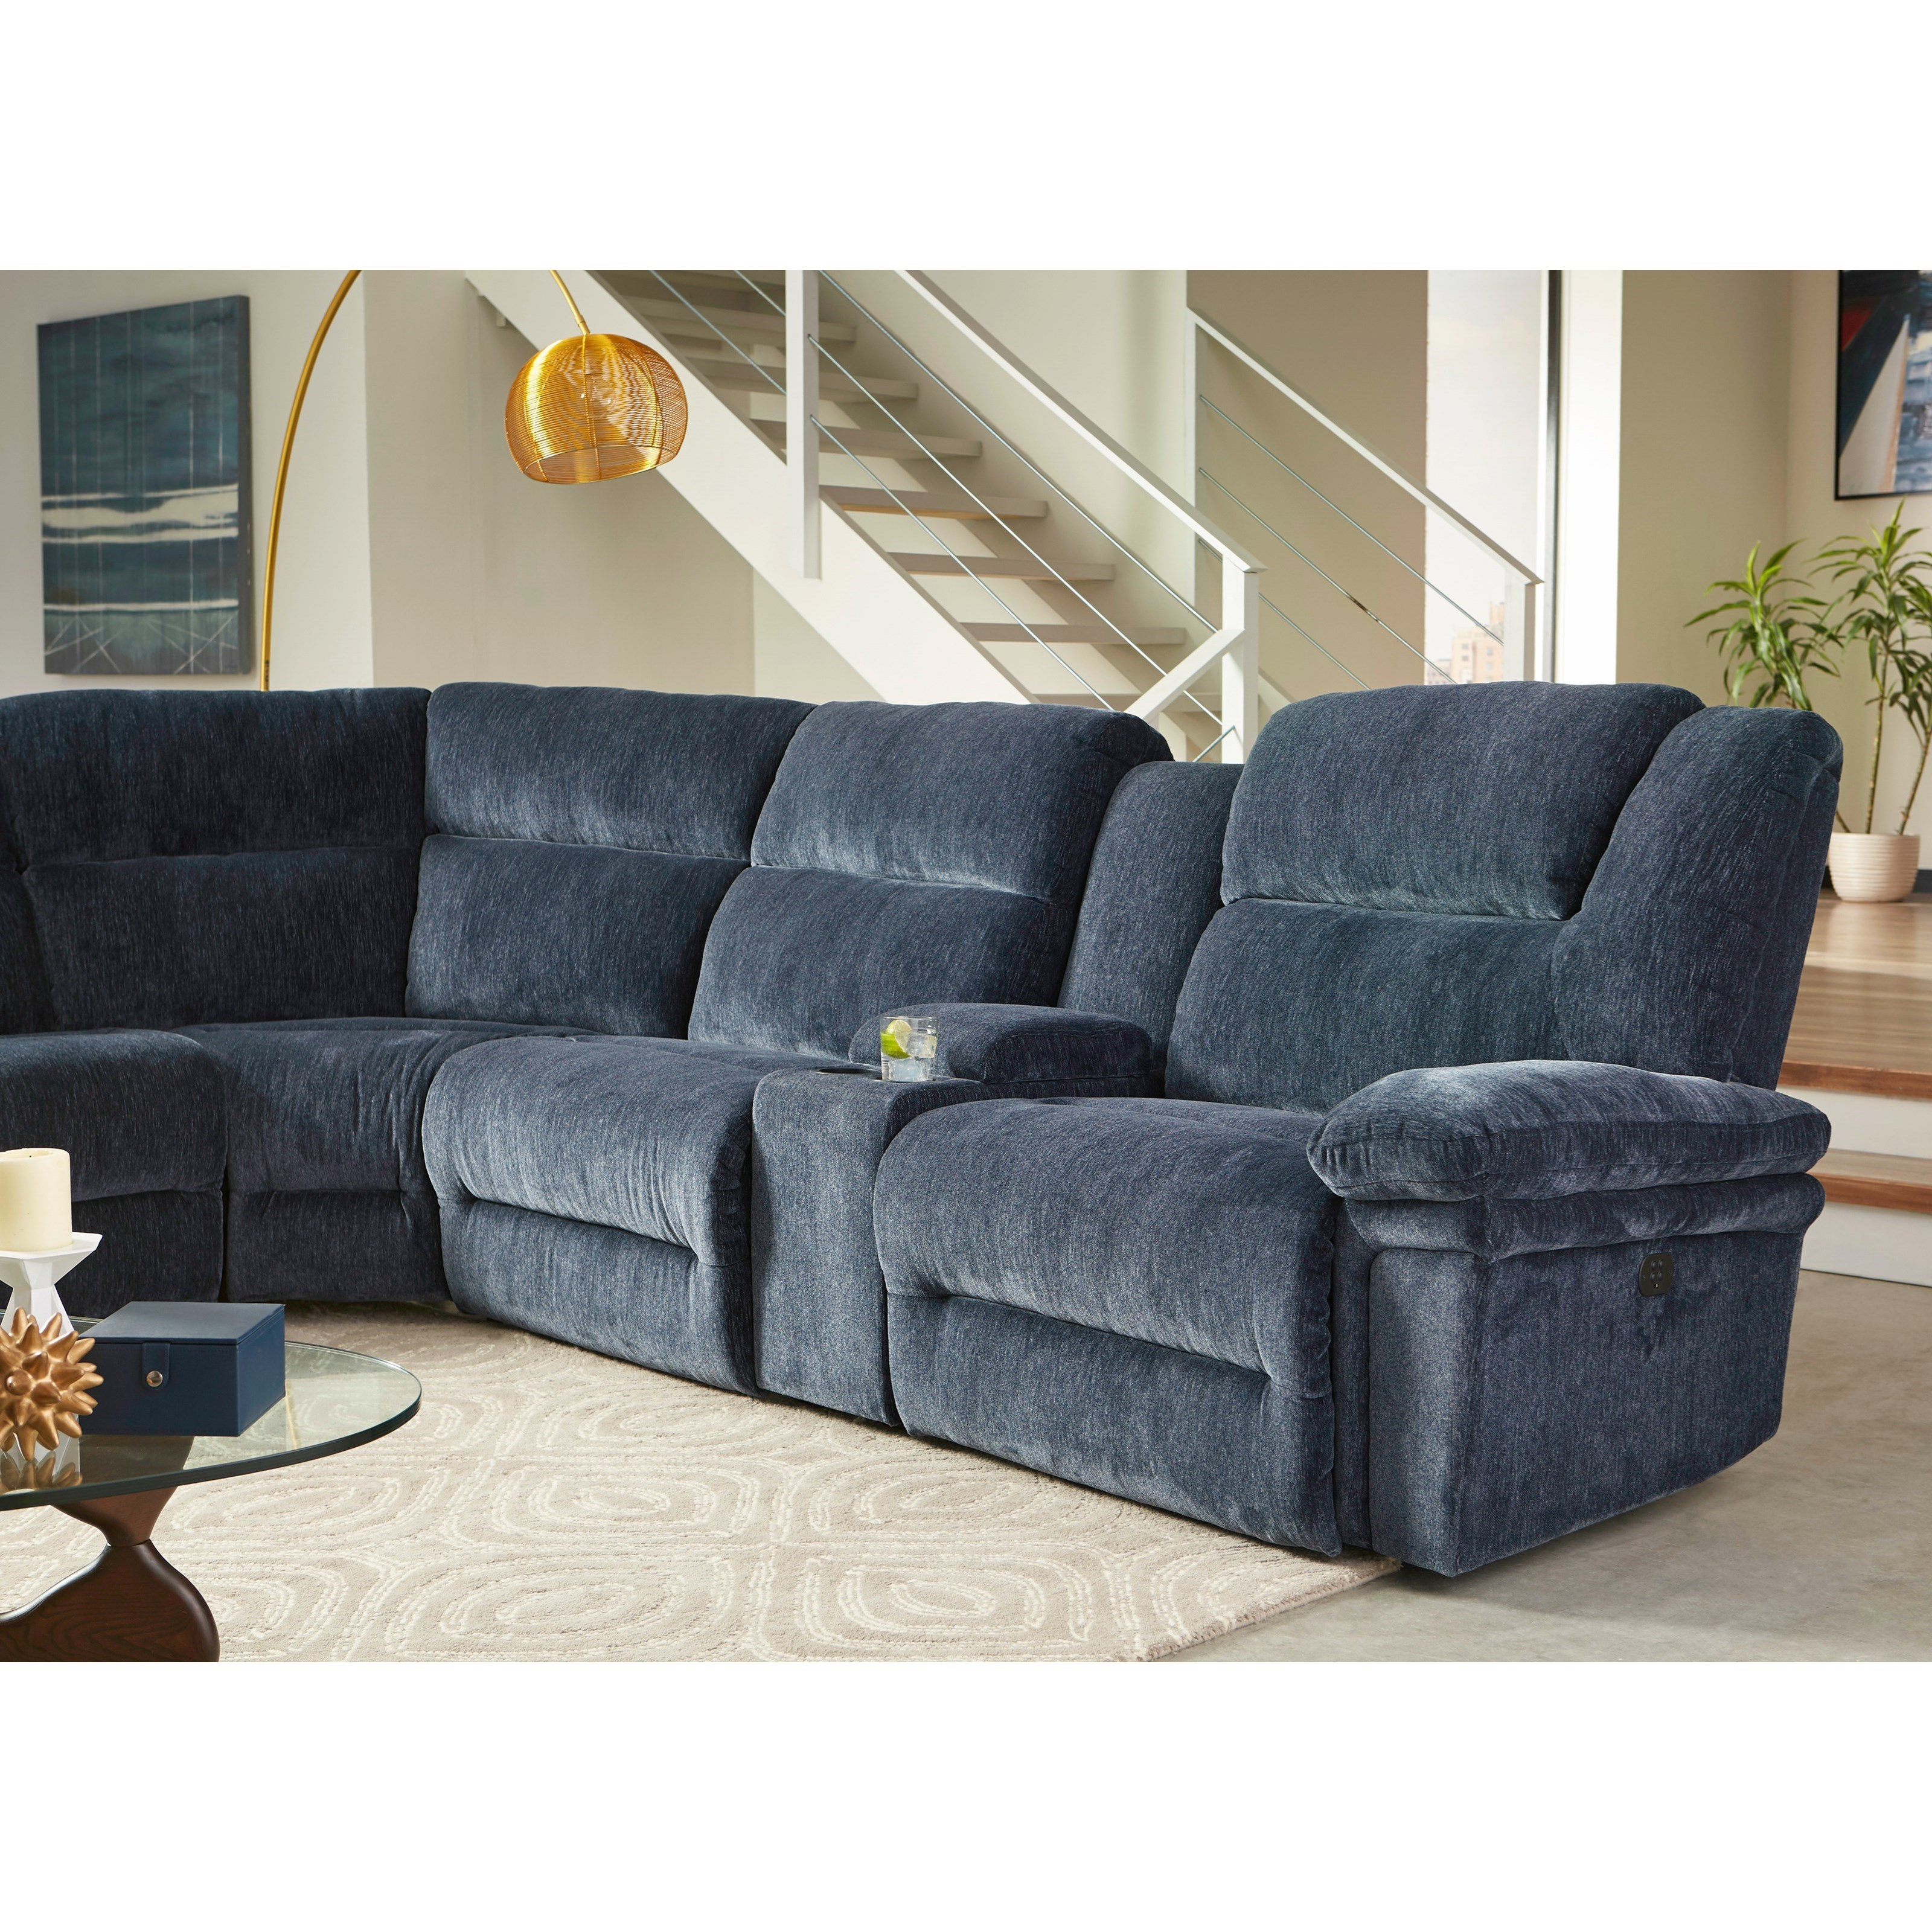 Best Home Furnishings Parker Six Piece Reclining Sectional Sofa With Cupholder Storage Console